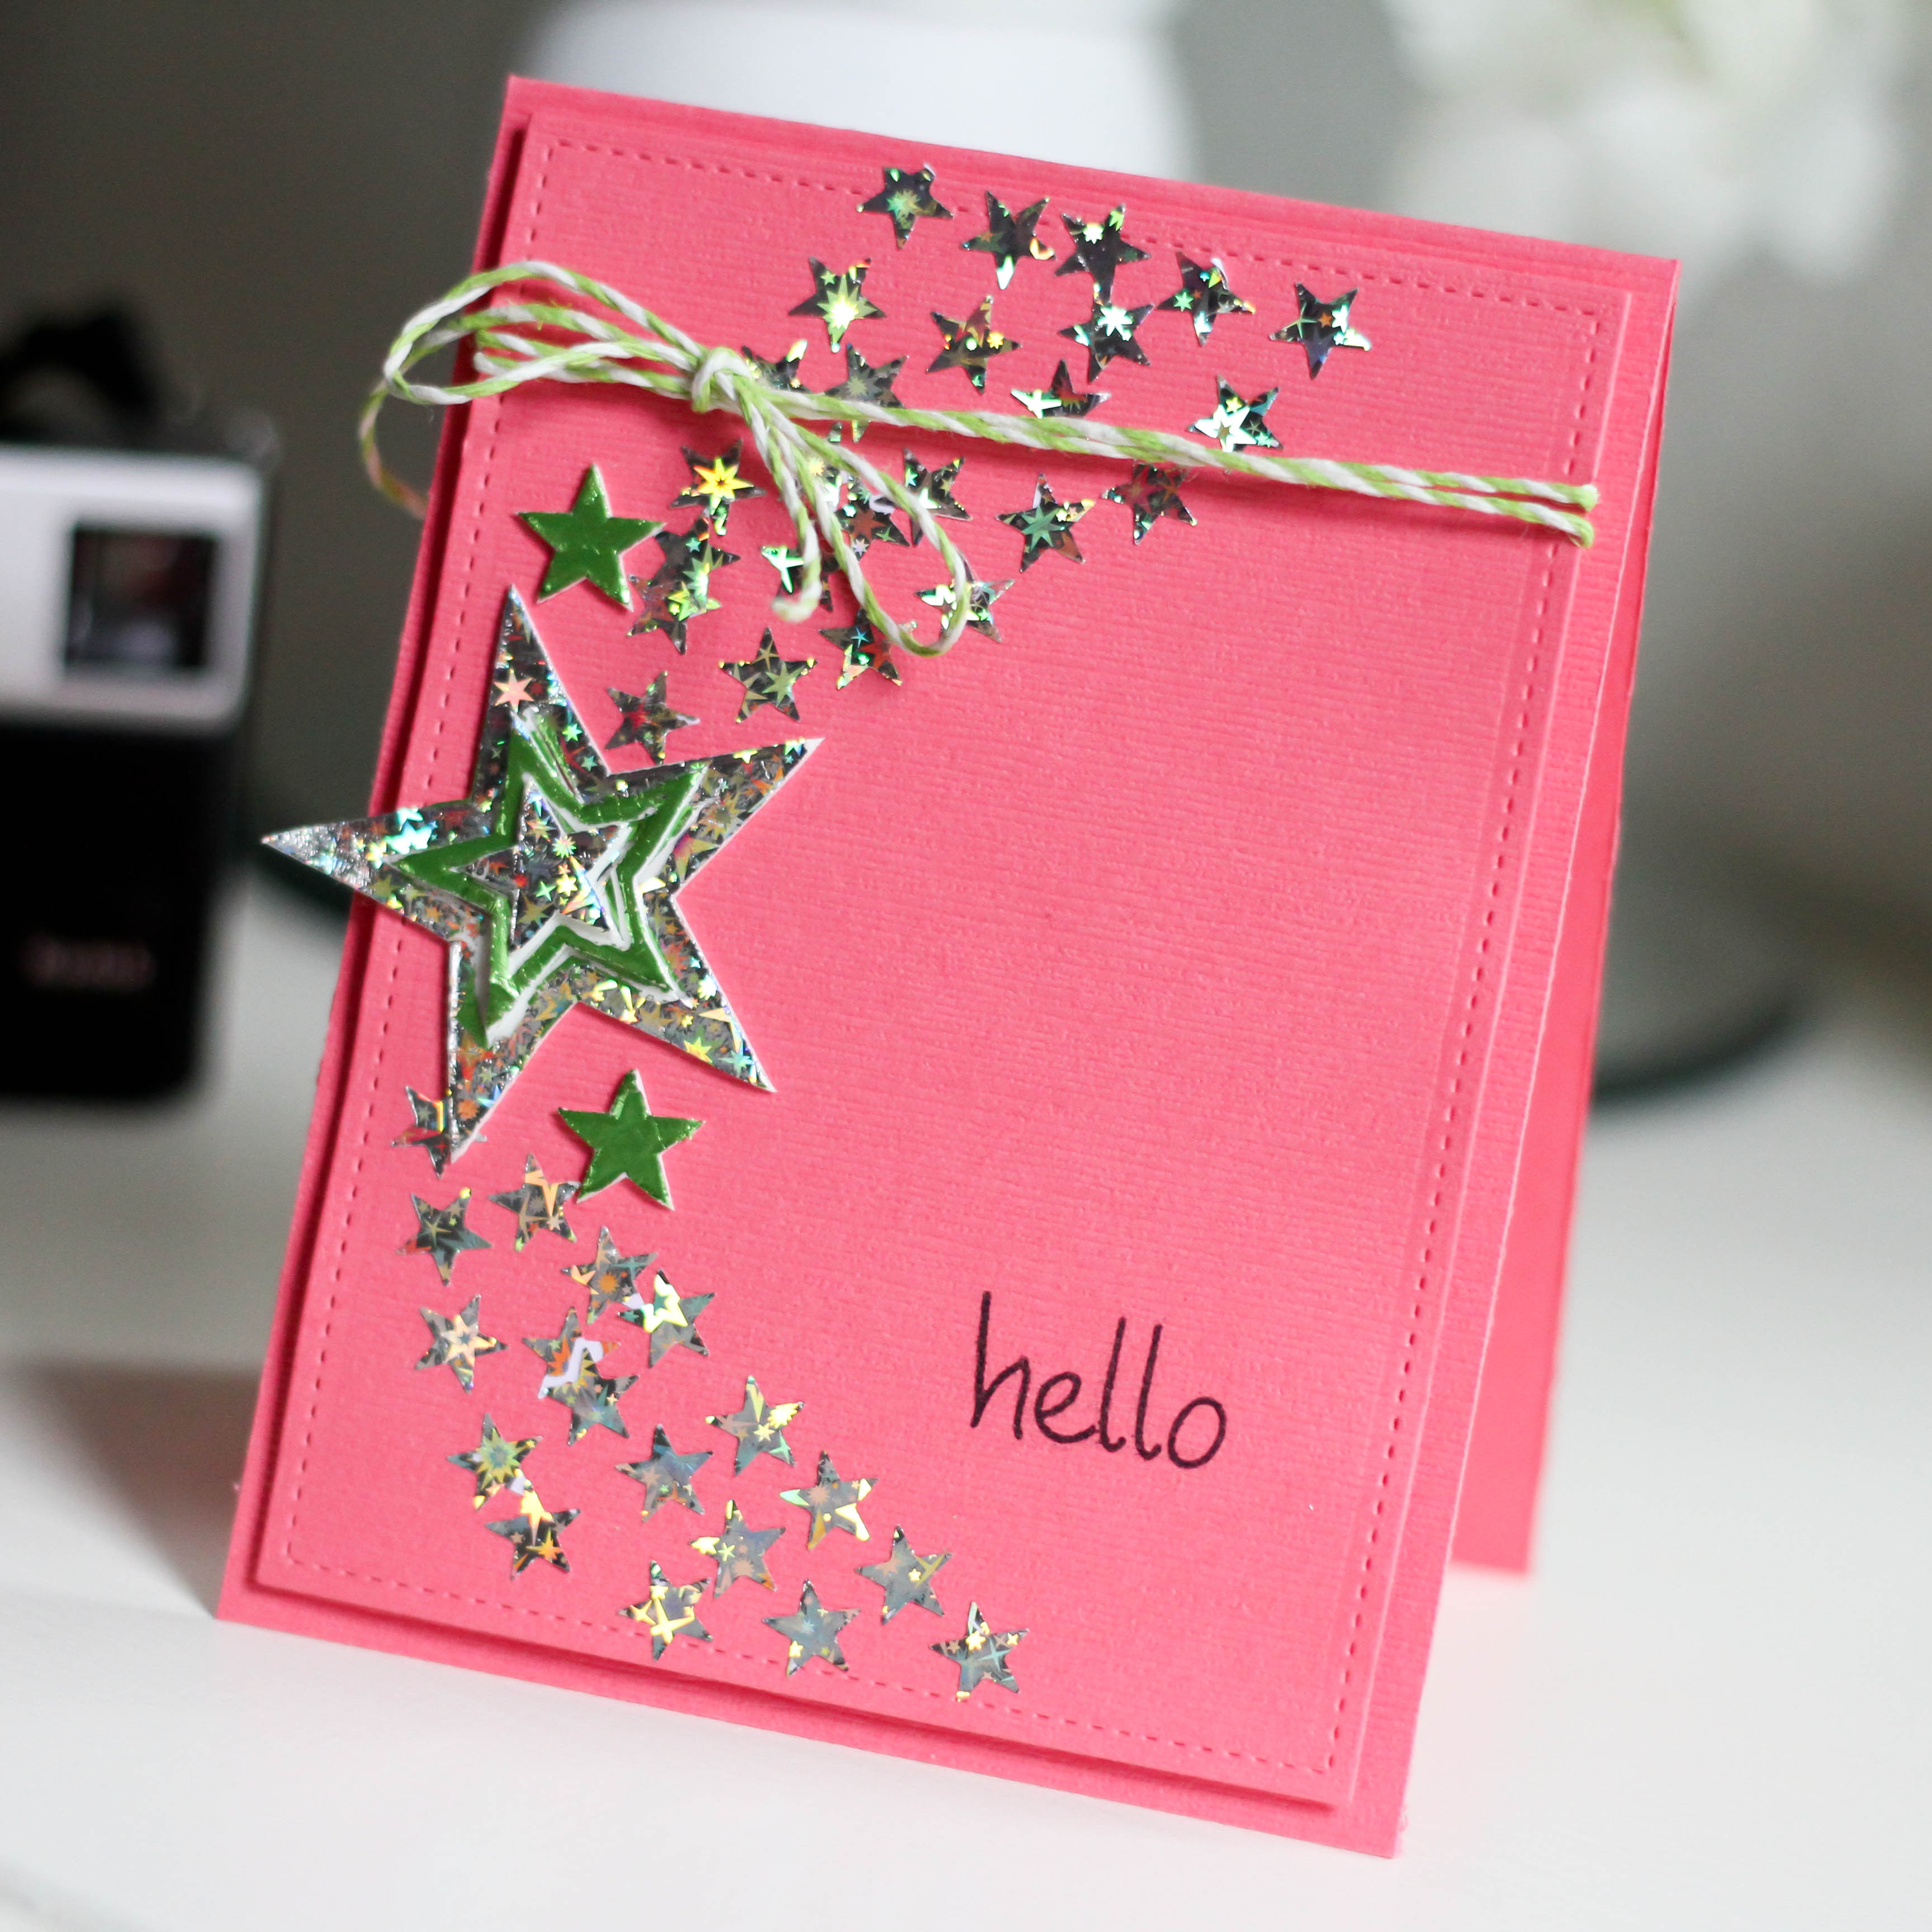 How to make scrapbook easy - Quick Easy Foiled Star Card